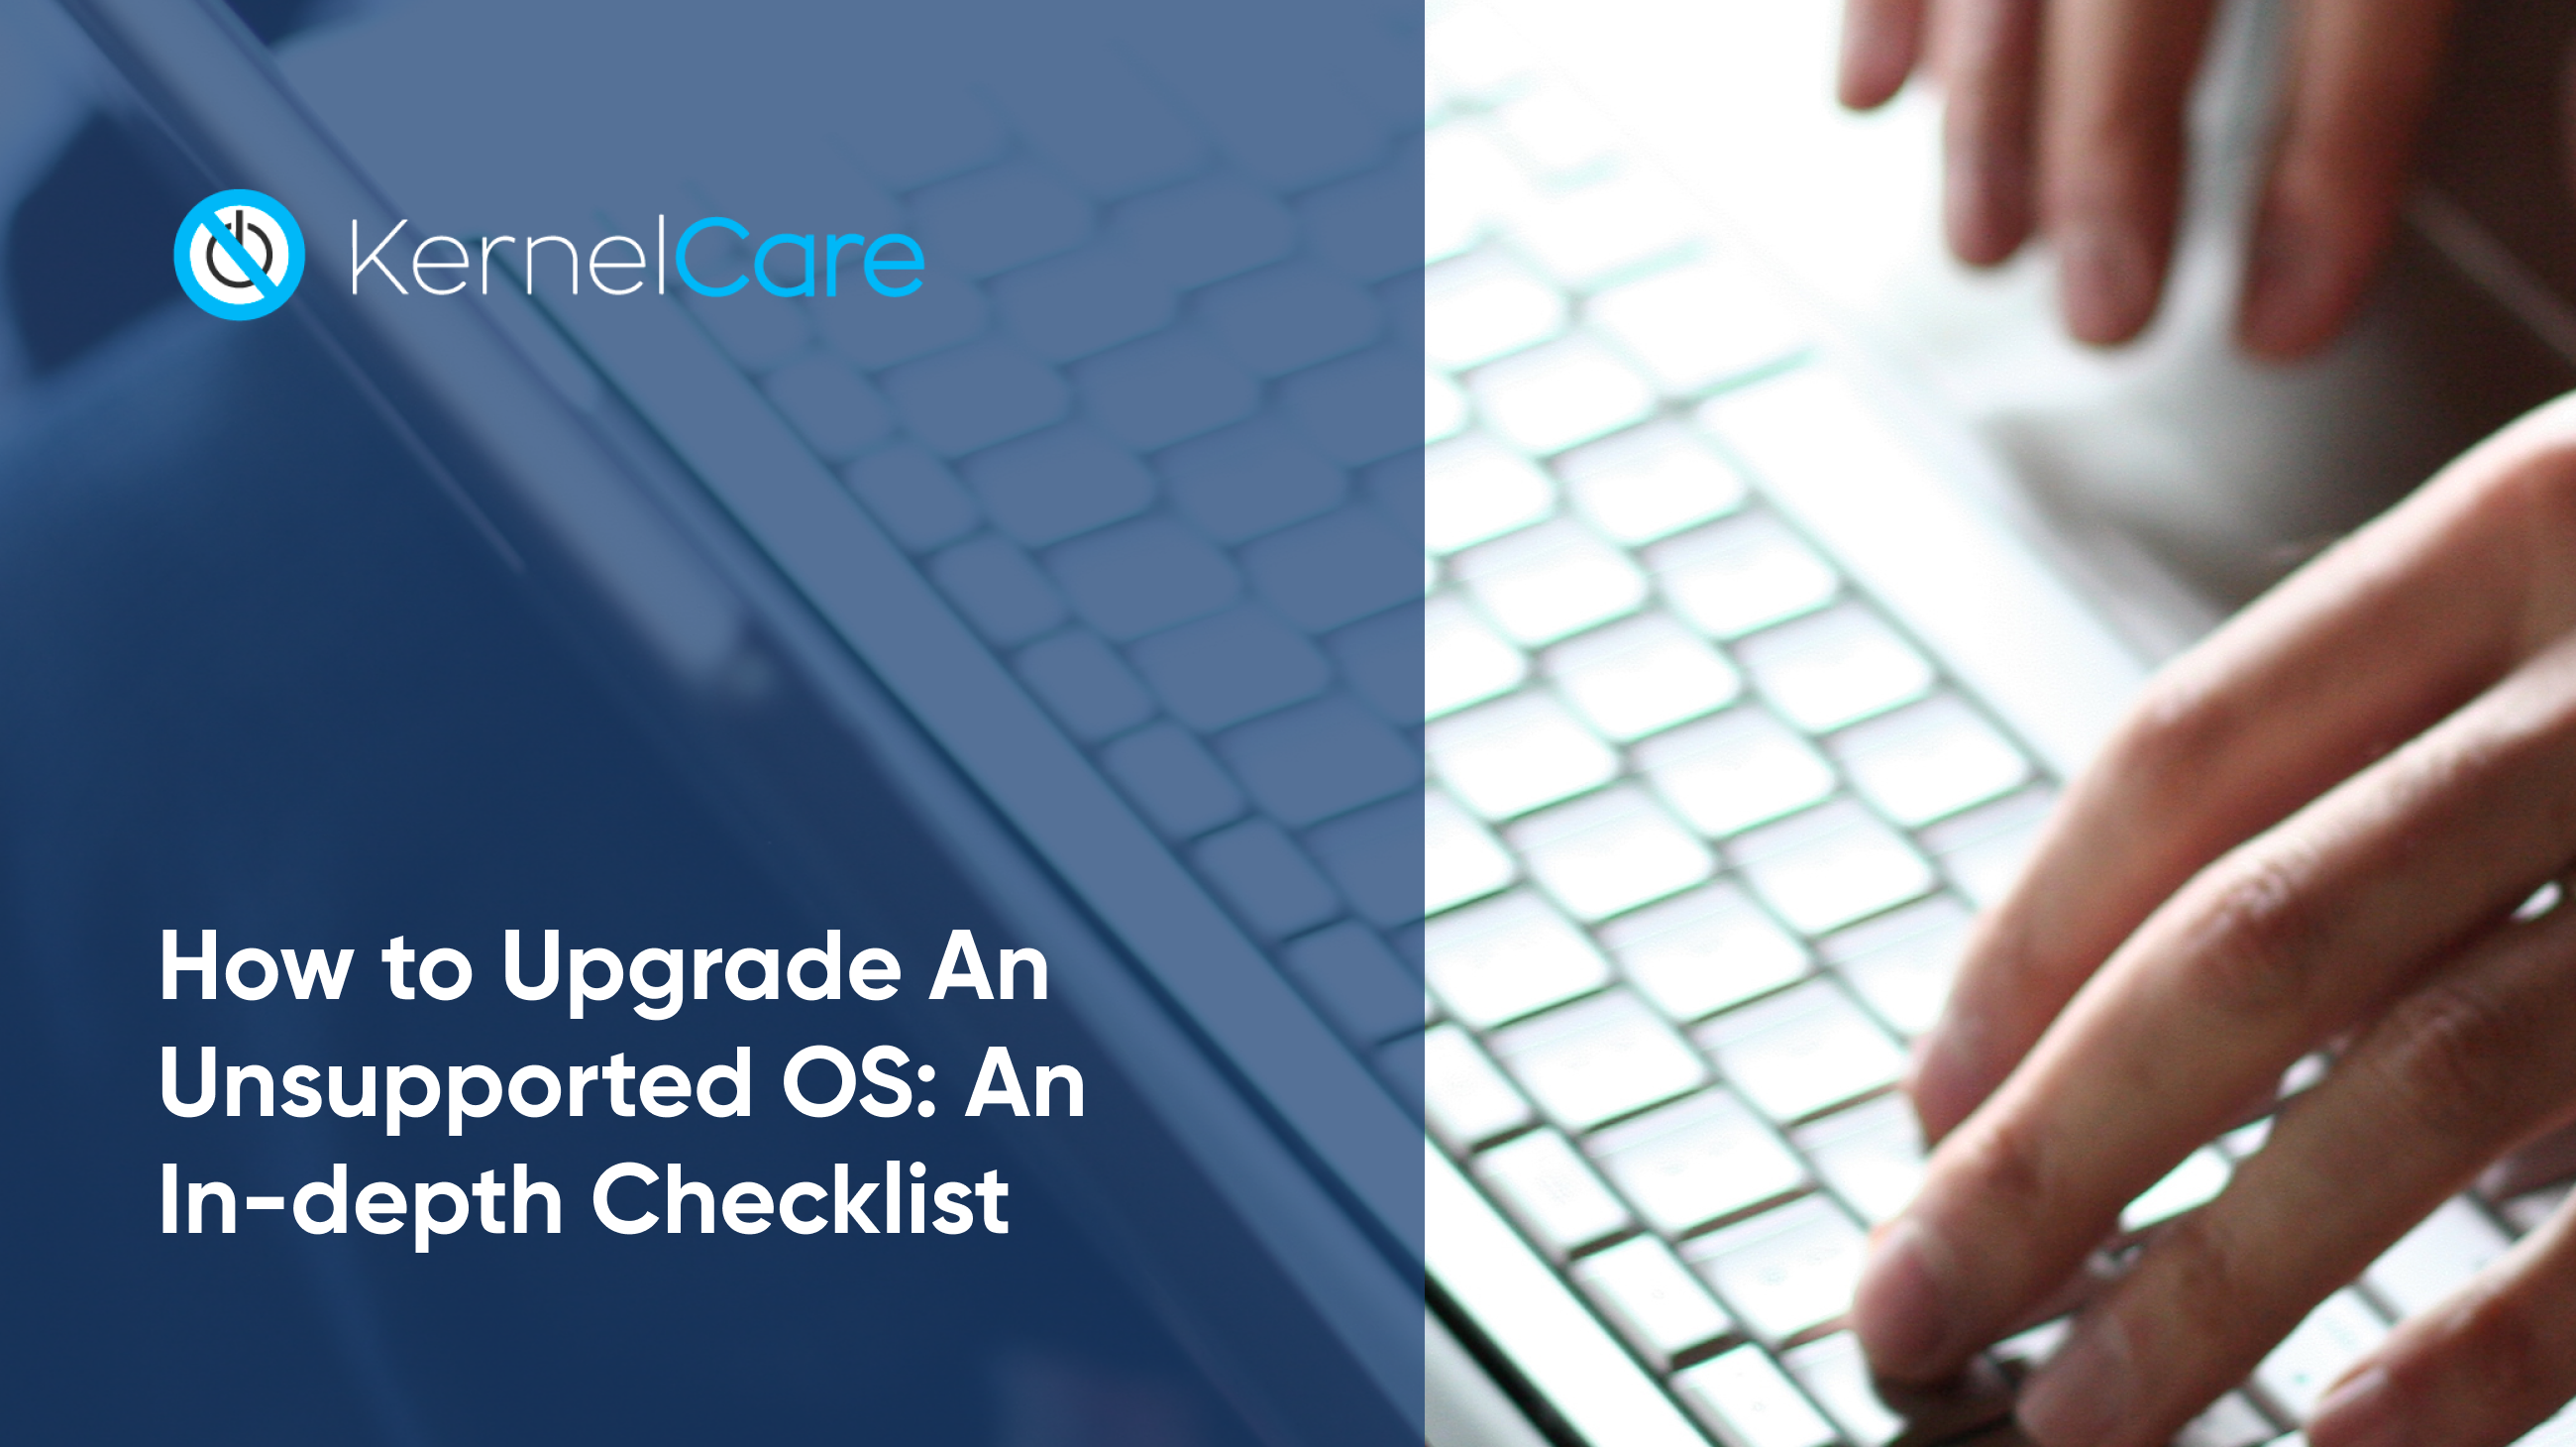 How to Upgrade An Unsupported OS: An In-depth Checklist